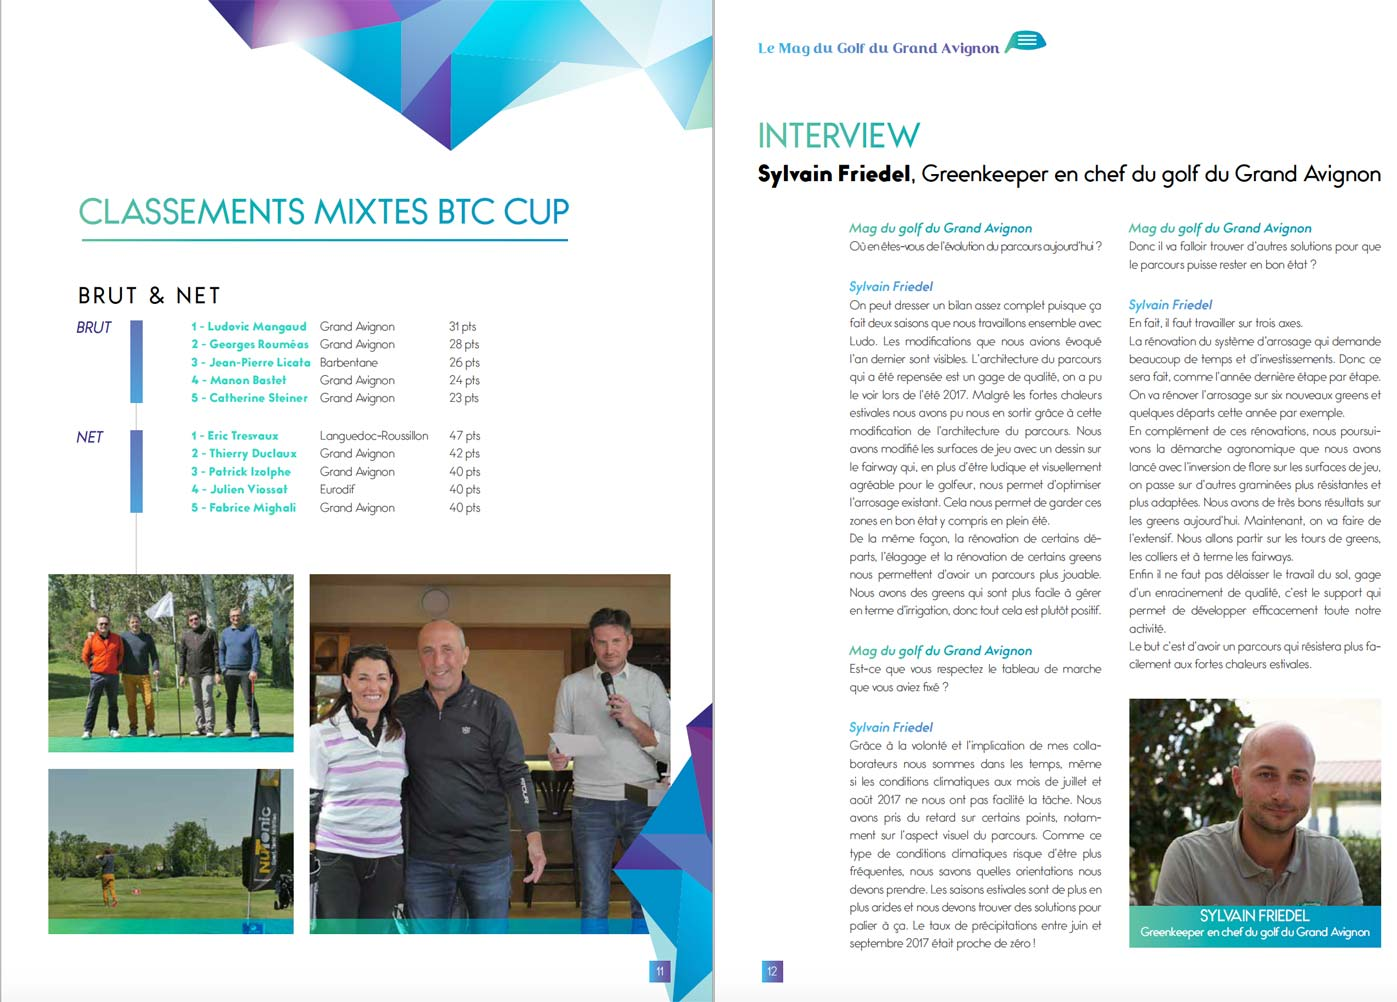 Interview greenkeeper magazine Golf Grand Avignon 2017